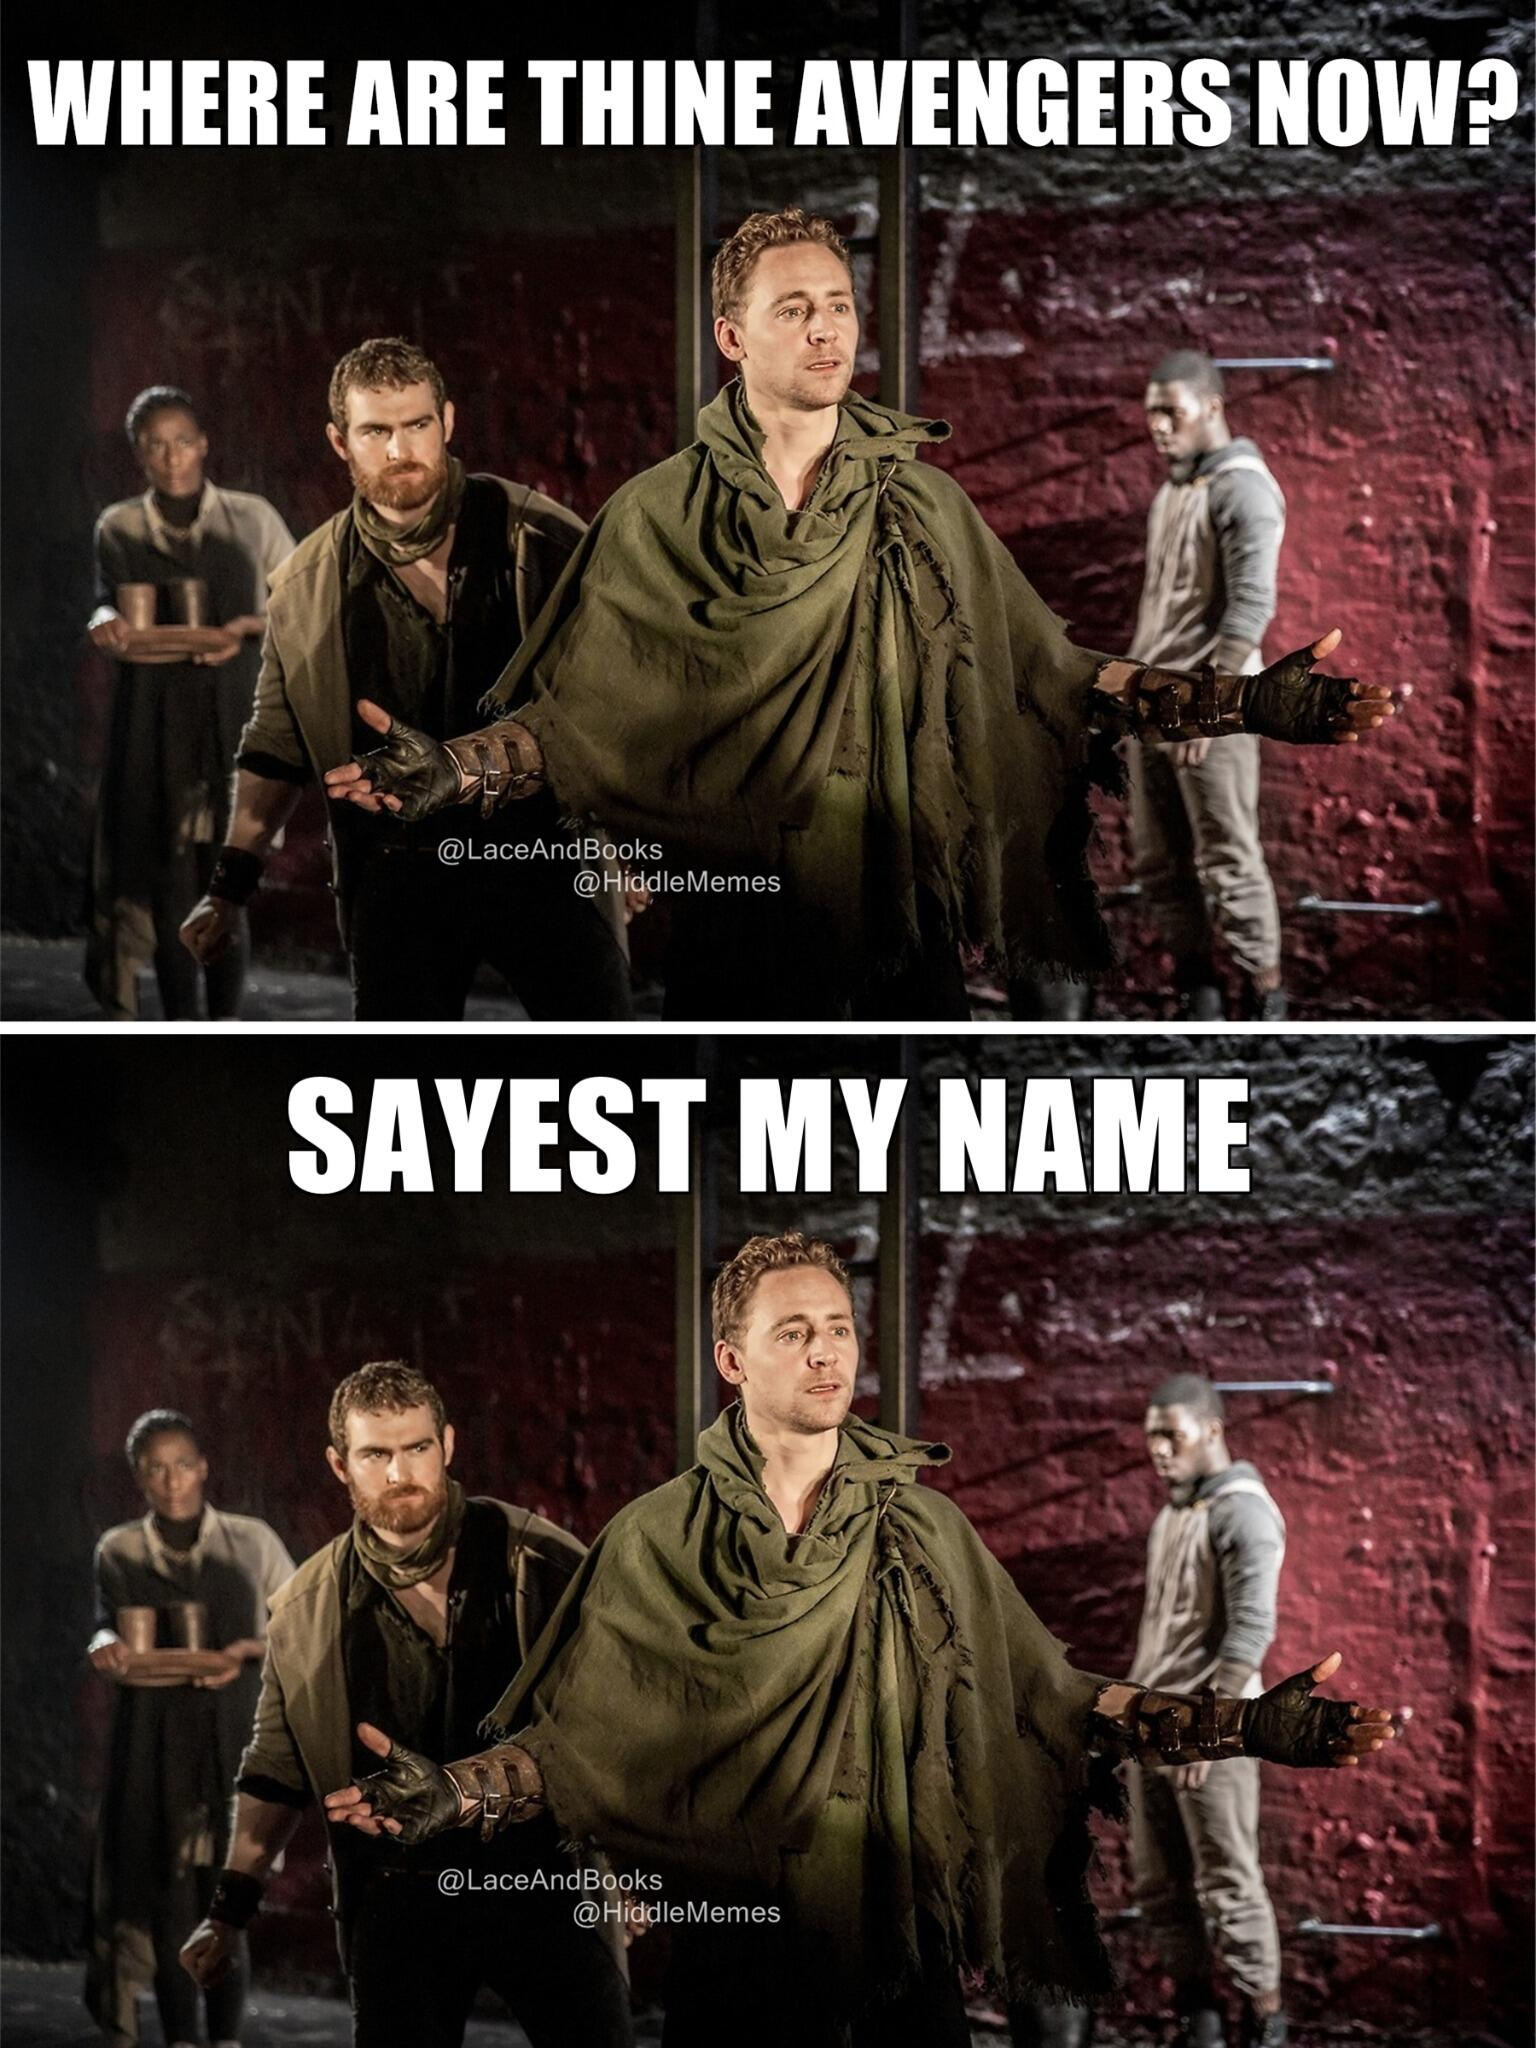 NEW MEME (Take 2): Created with @LaceAndBooks. If Coriolanus went to Comic Con